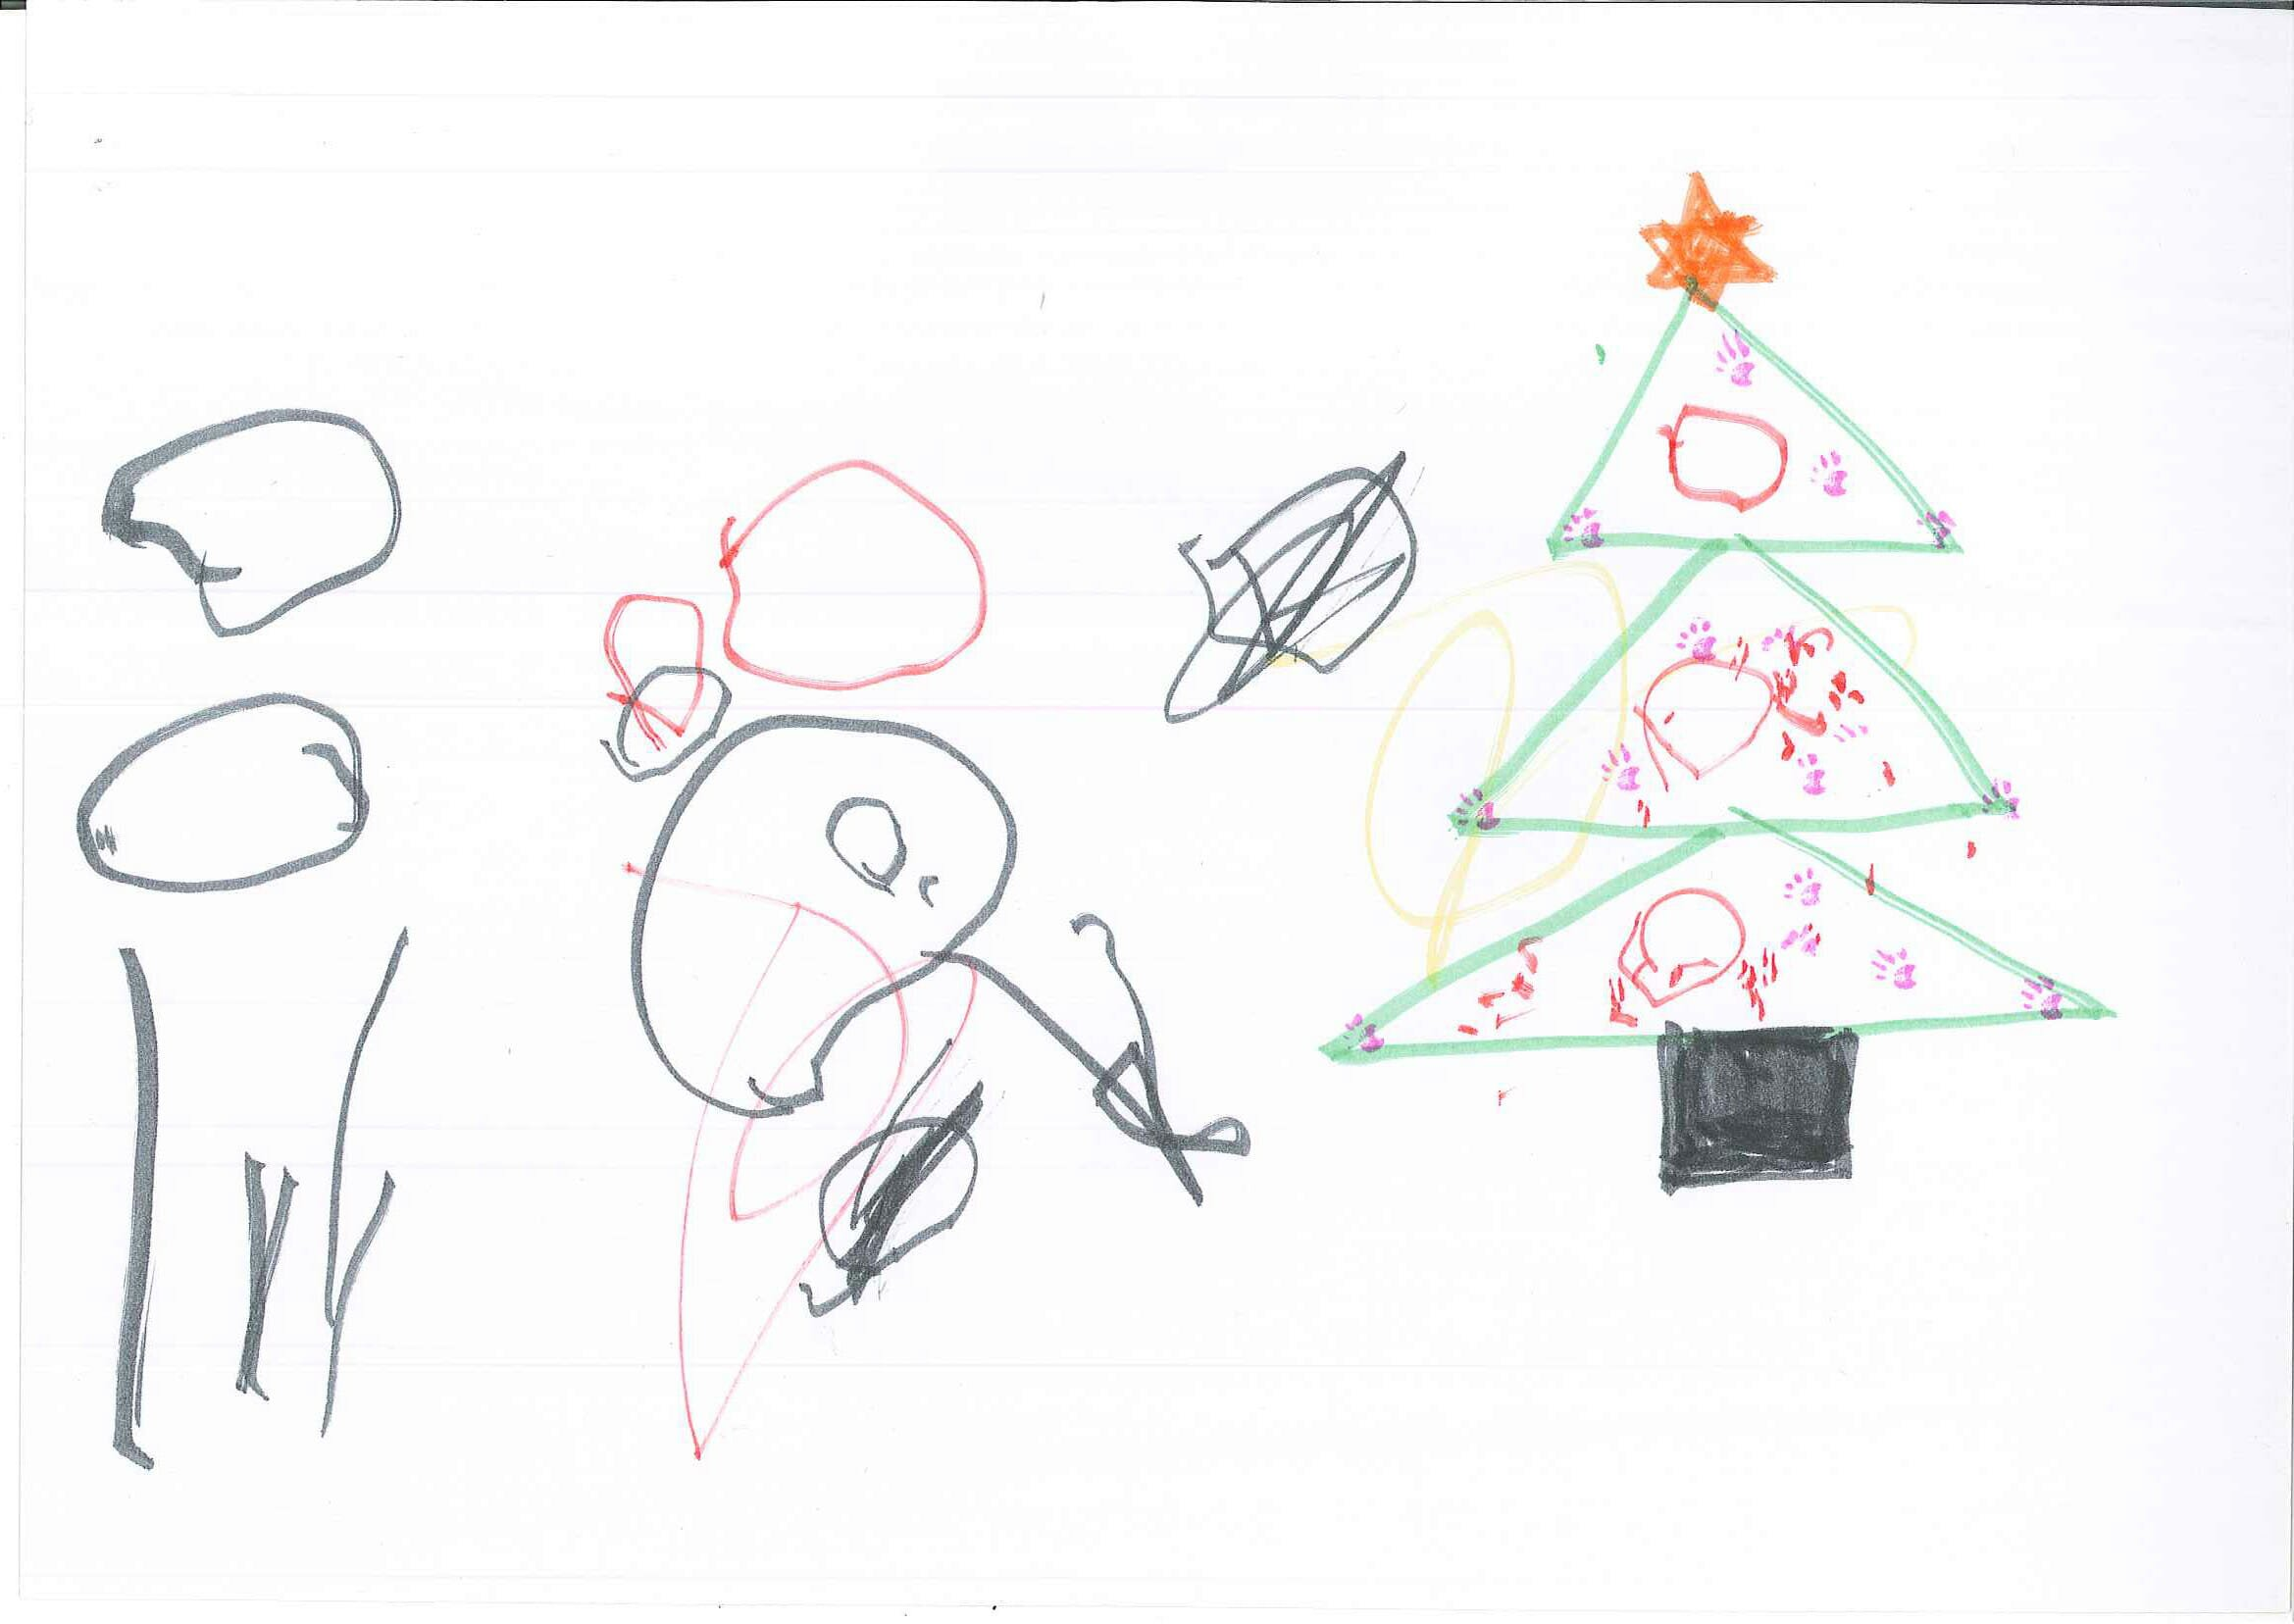 CHECT Christmas card competition - Imogen